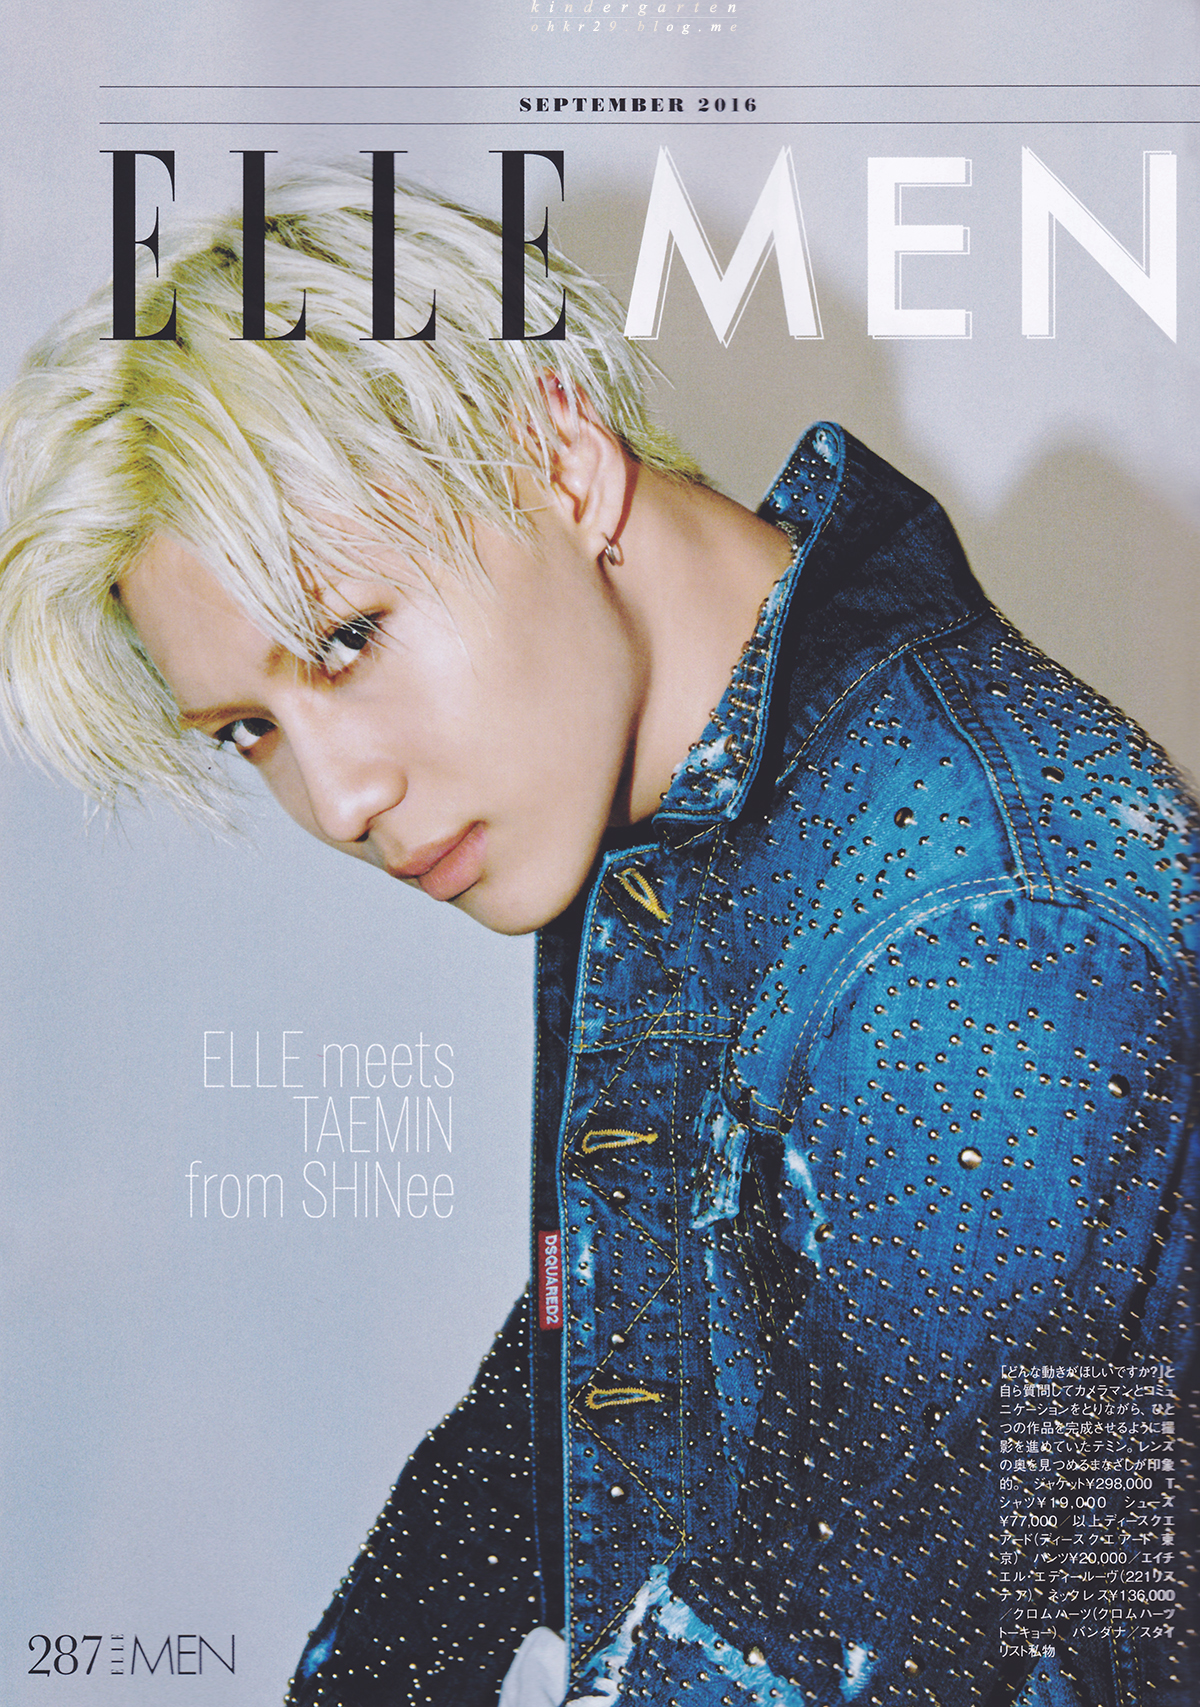 8 Best Decks Tarot Apokalypsis Images On Pinterest: Photo )) The 8 Of Best Photo Shoots Of SHINee Taemin Ever